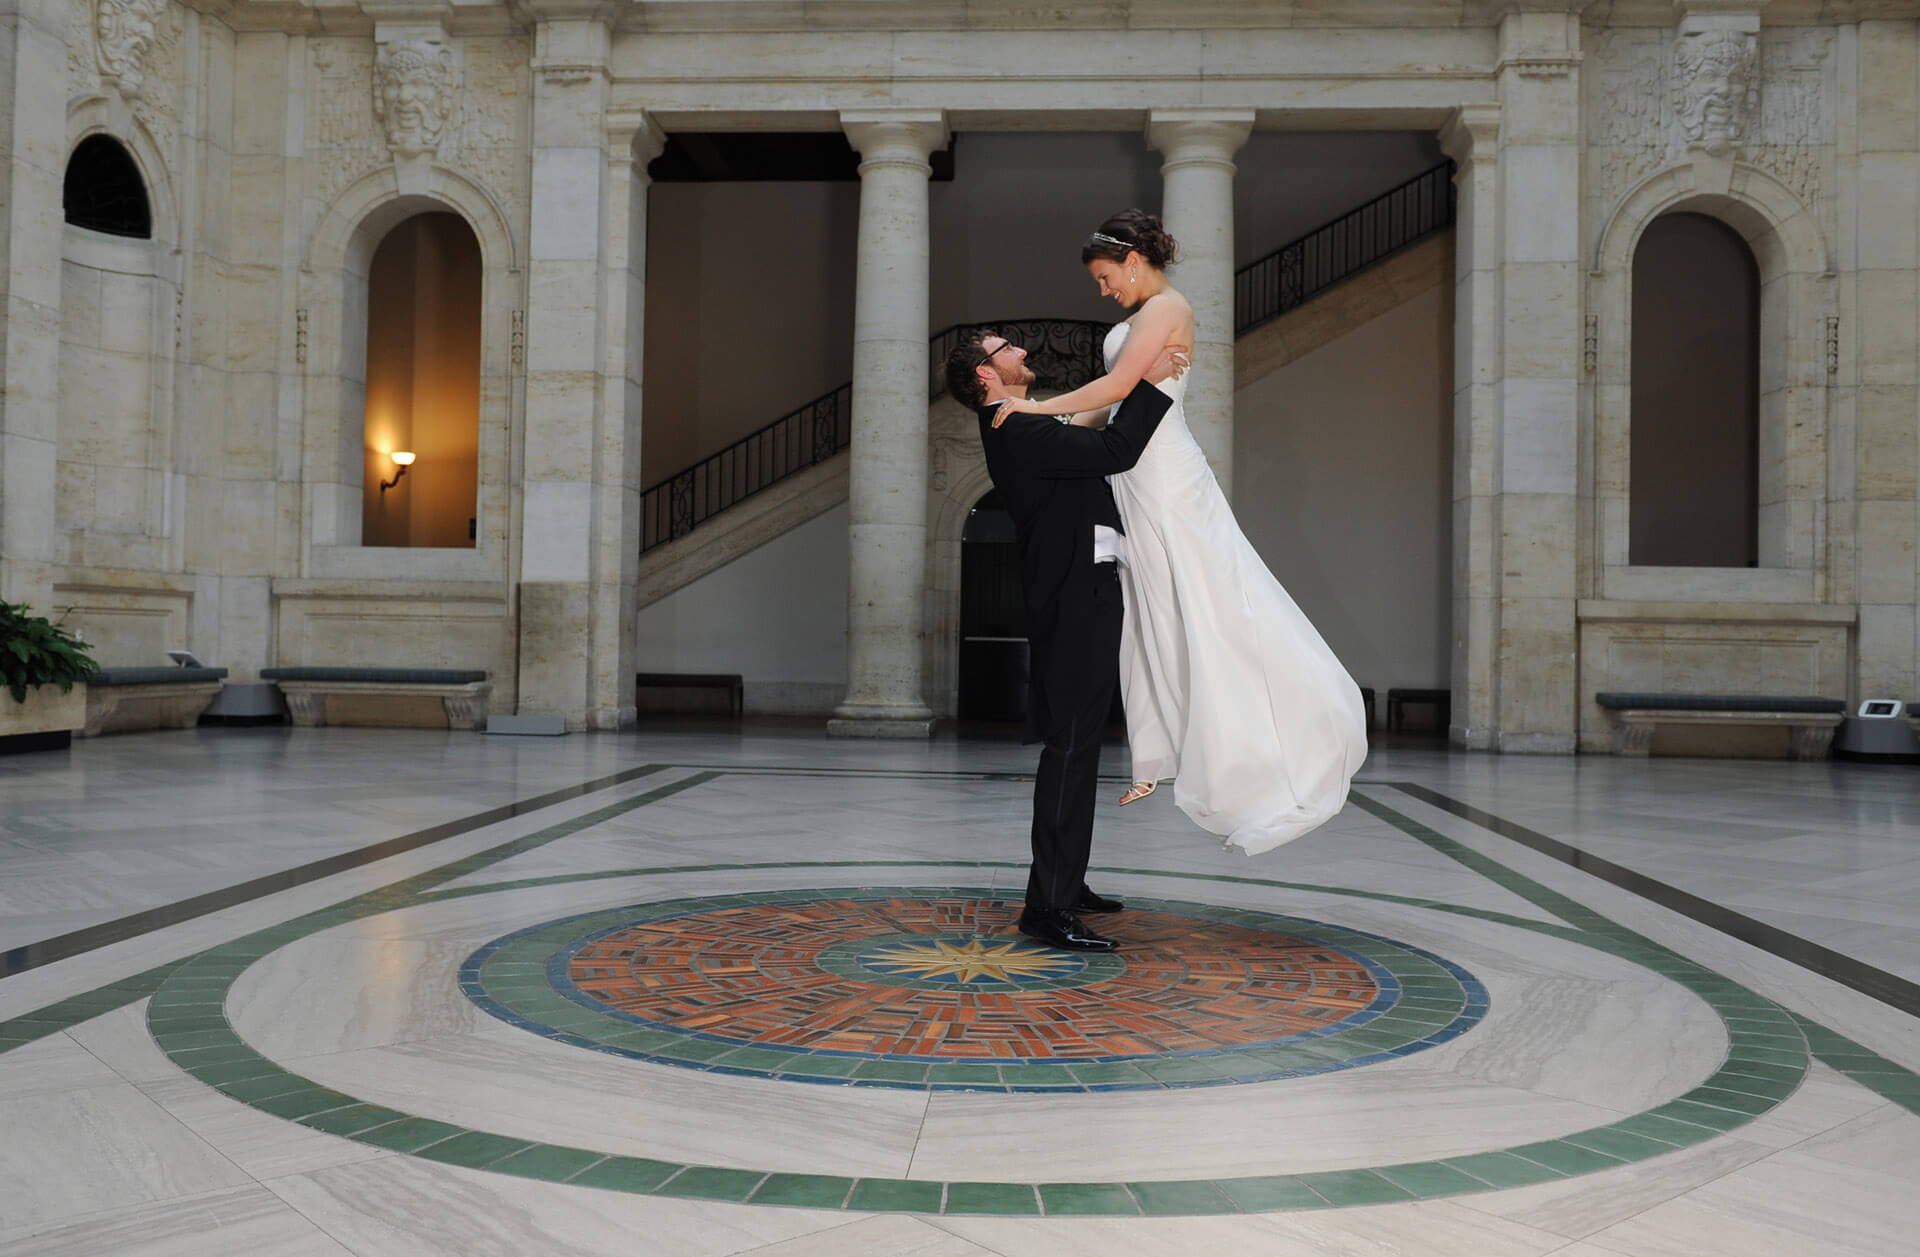 Bride and groom practice their dance at the DIA in Detroit, Michigan.